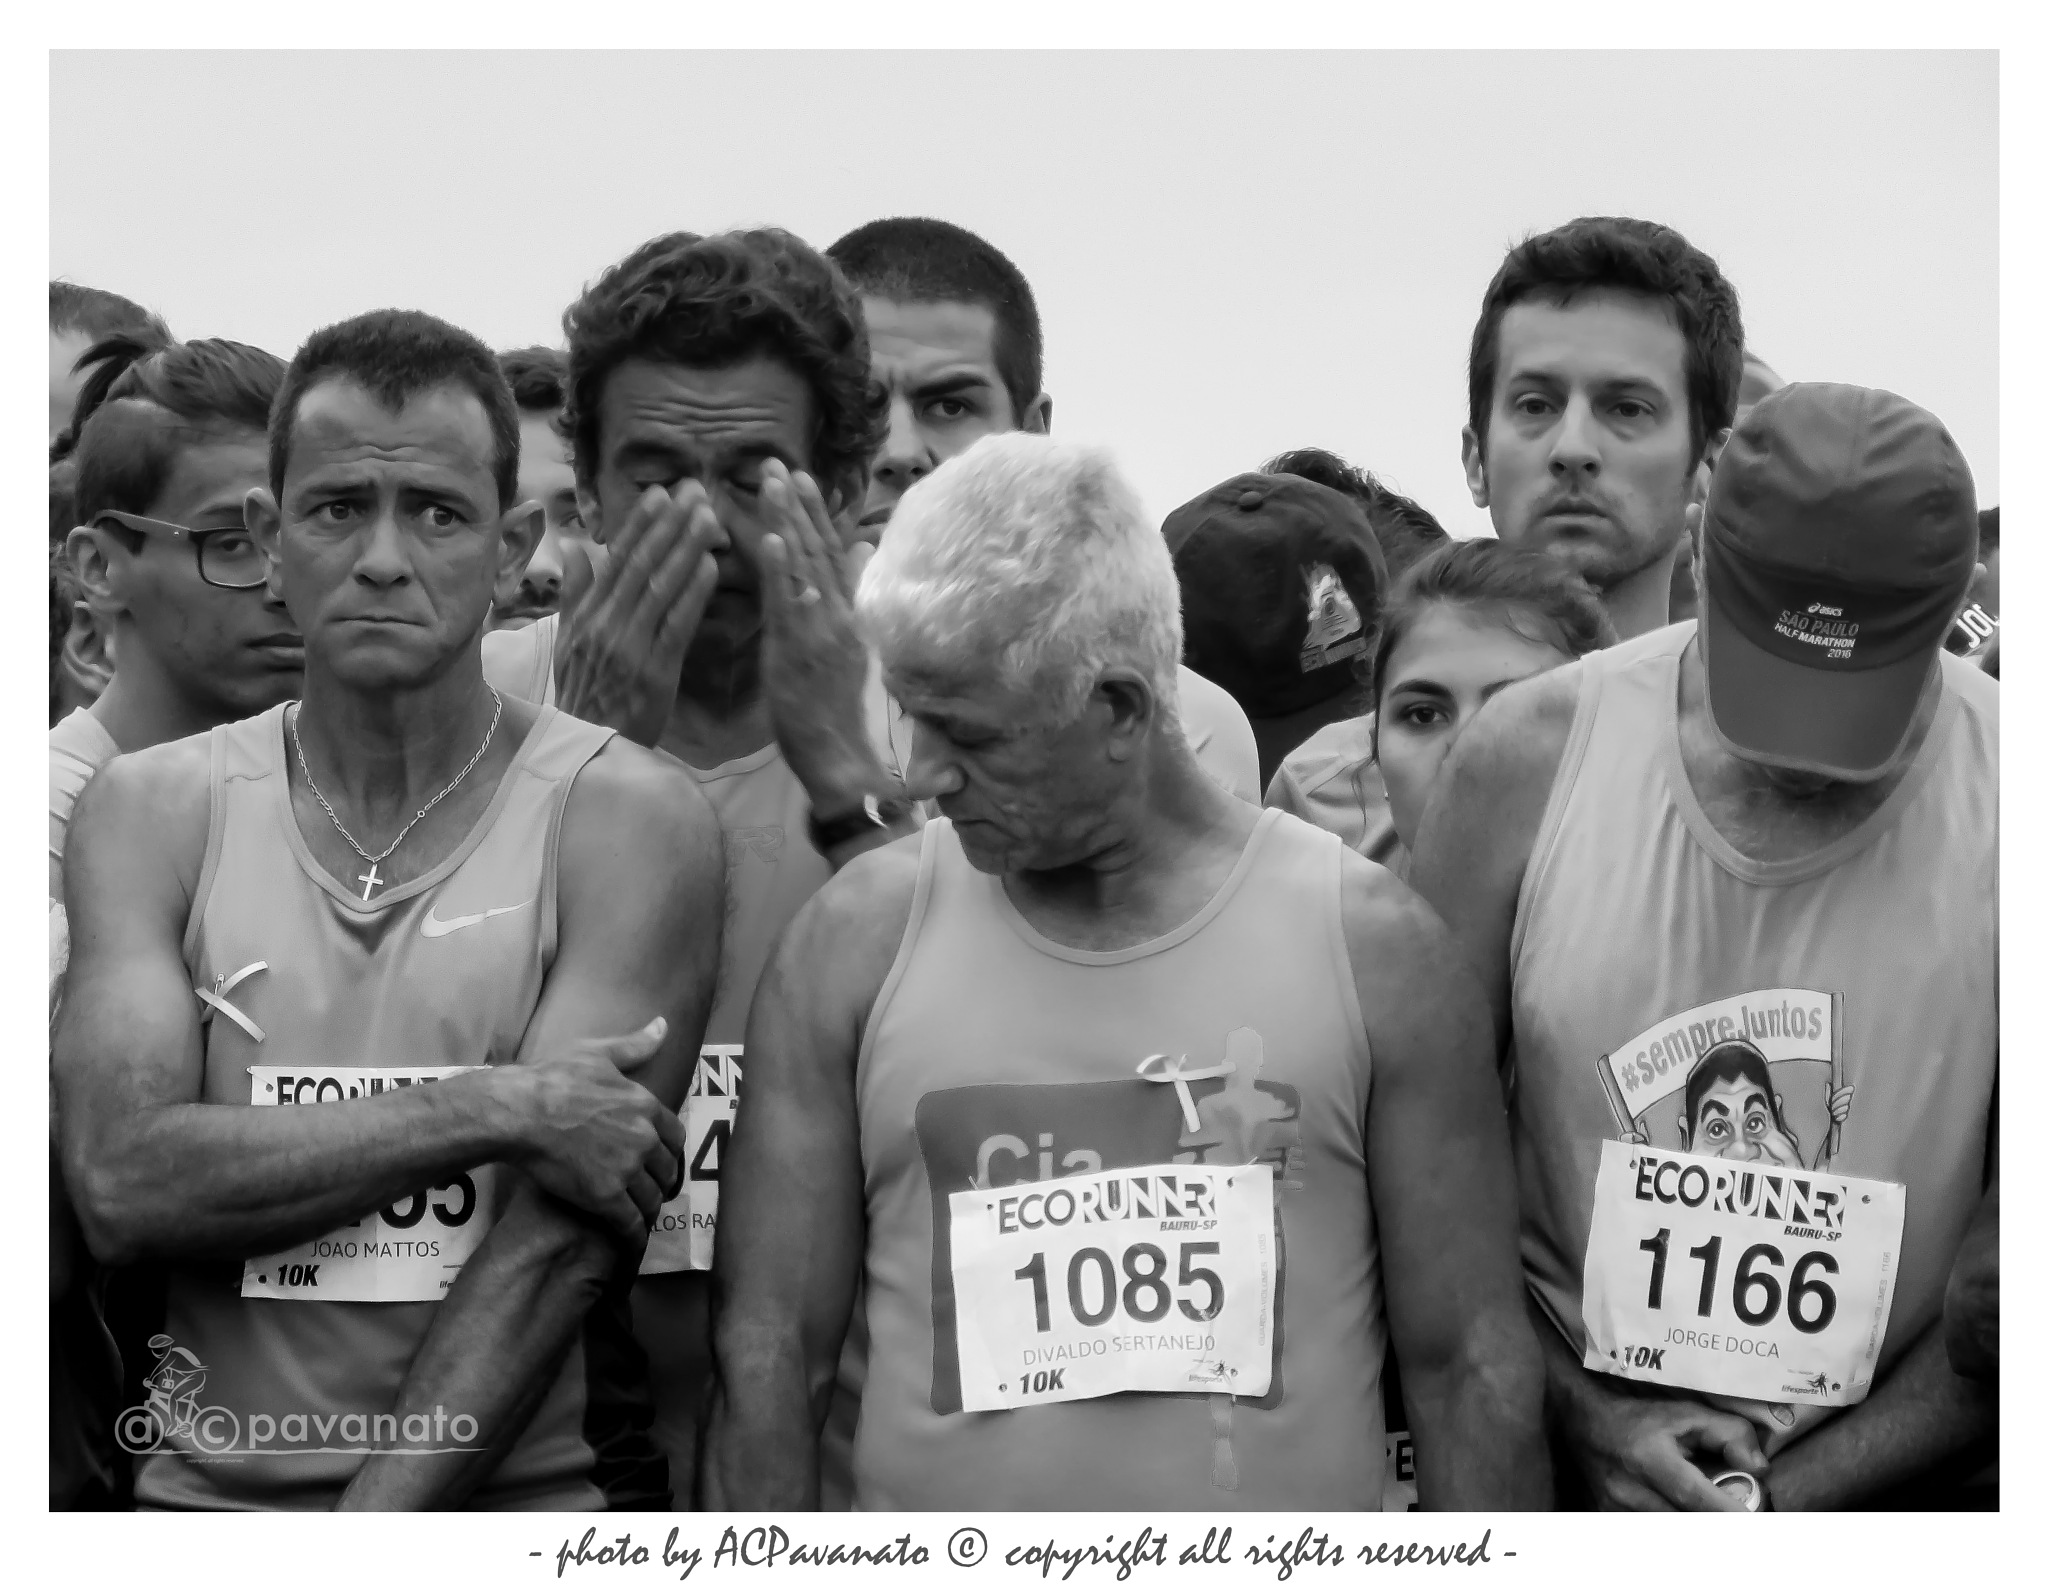 Tension of runners by ACPavanato